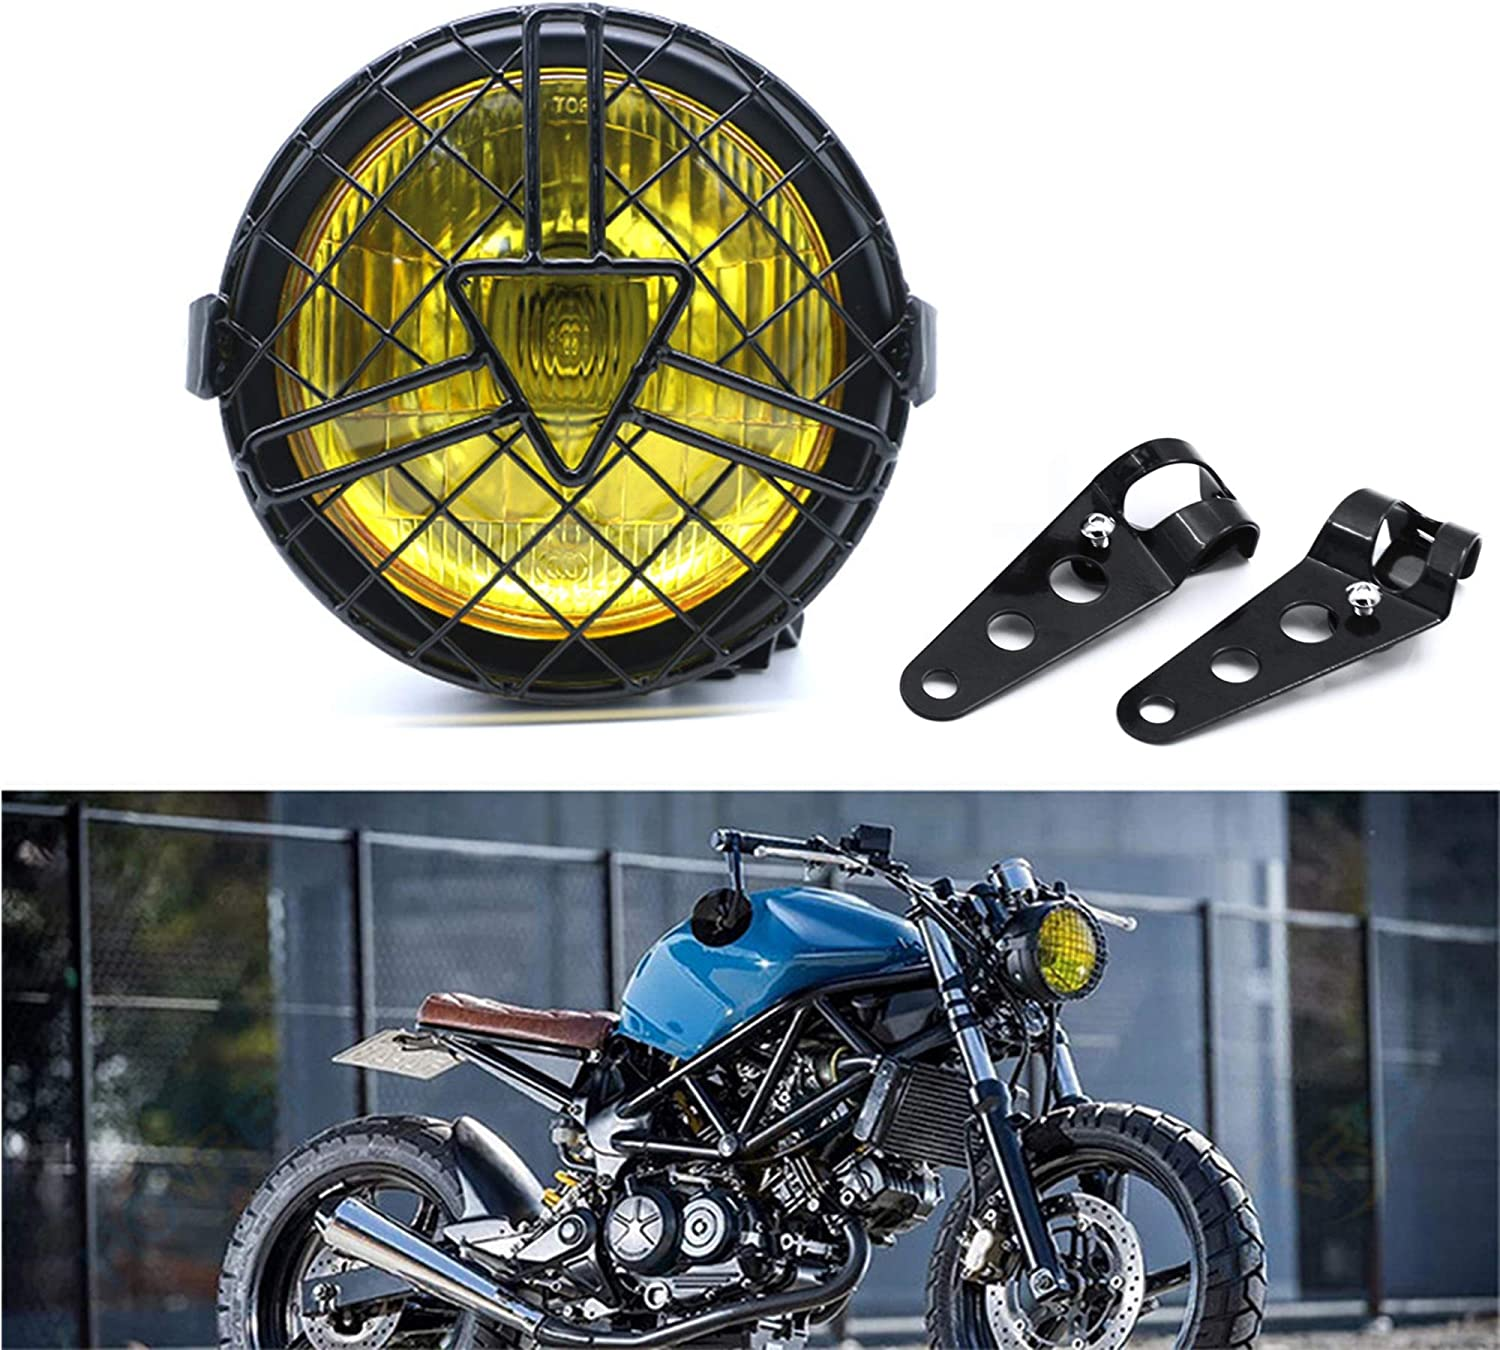 yellow 6  Halogen Headlight with Lampshade Cover Retro for Cafe Racer Bobber Chopper CG125 GN125 evomosa Universal Motorcycle Headlight